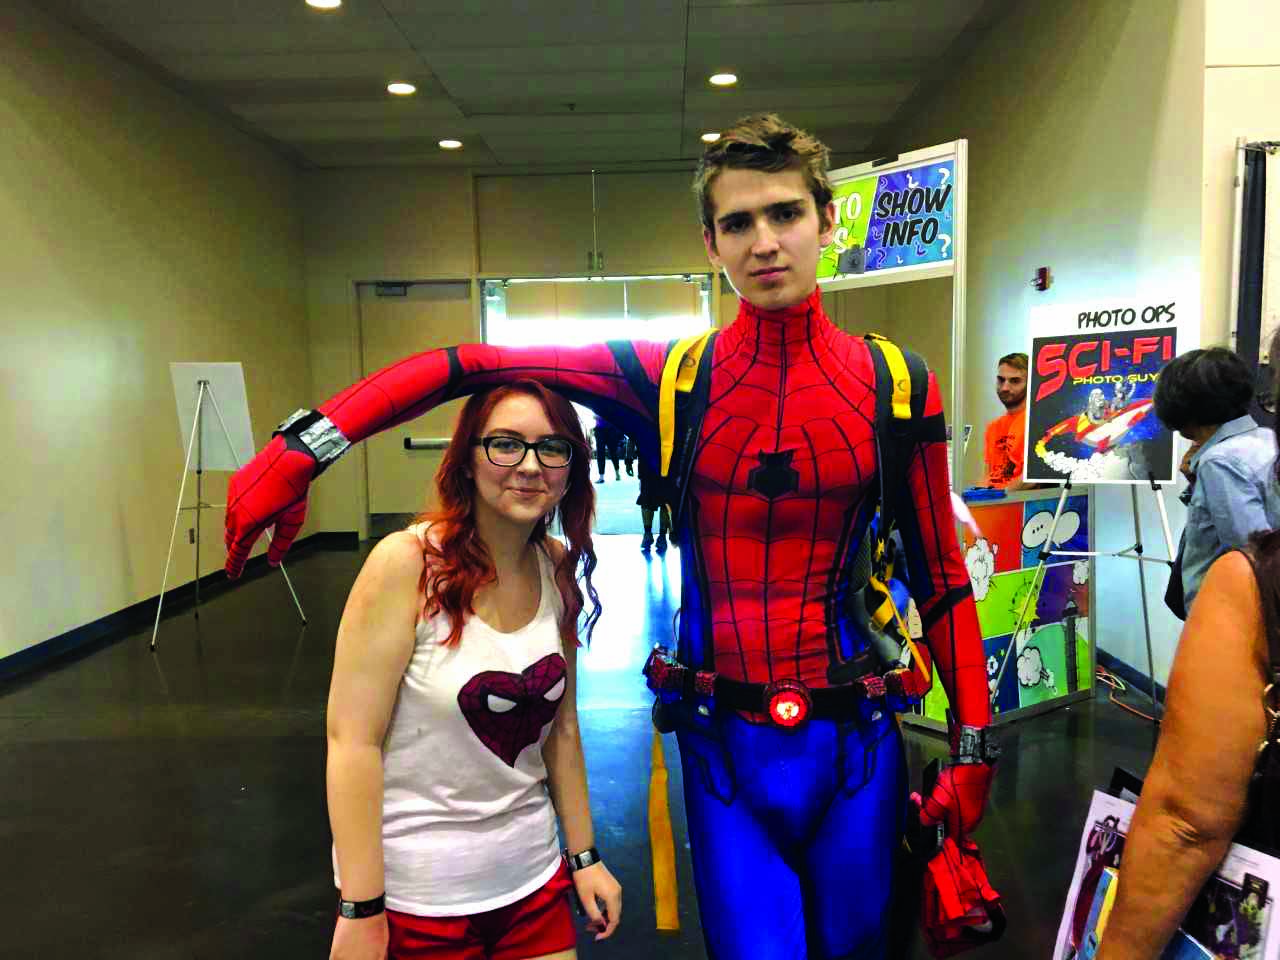 Brooke Bathchelder and Shane Denial attended ComiCon Erie and represented their love of superheroes, especially Spiderman.